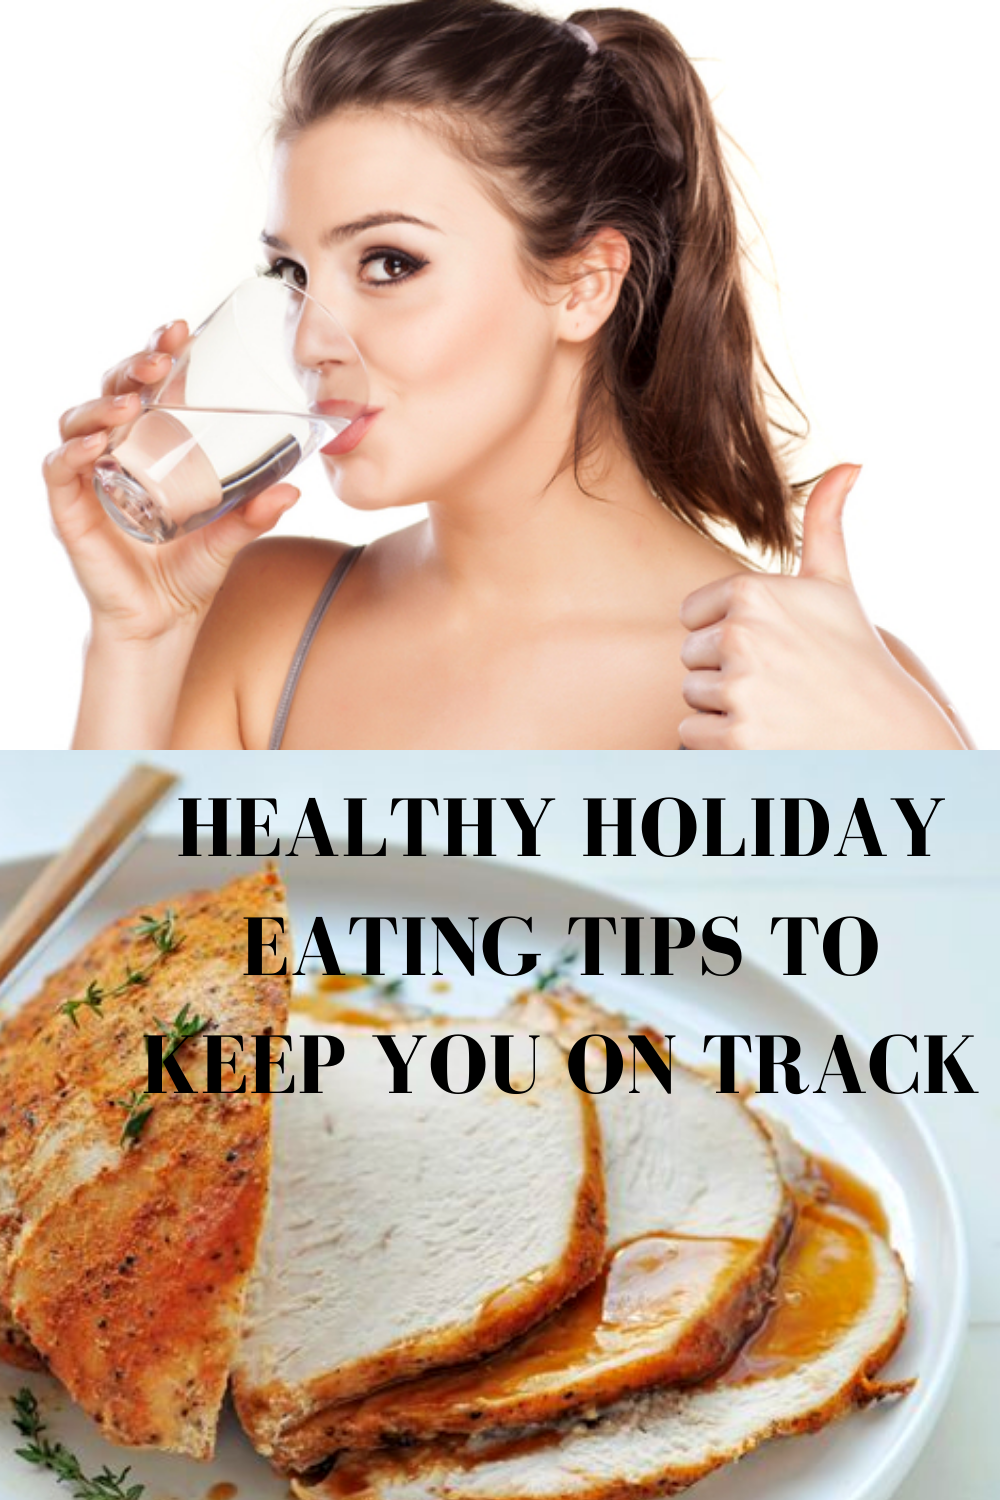 Healthy Holiday Eating Tips to Keep You on Track